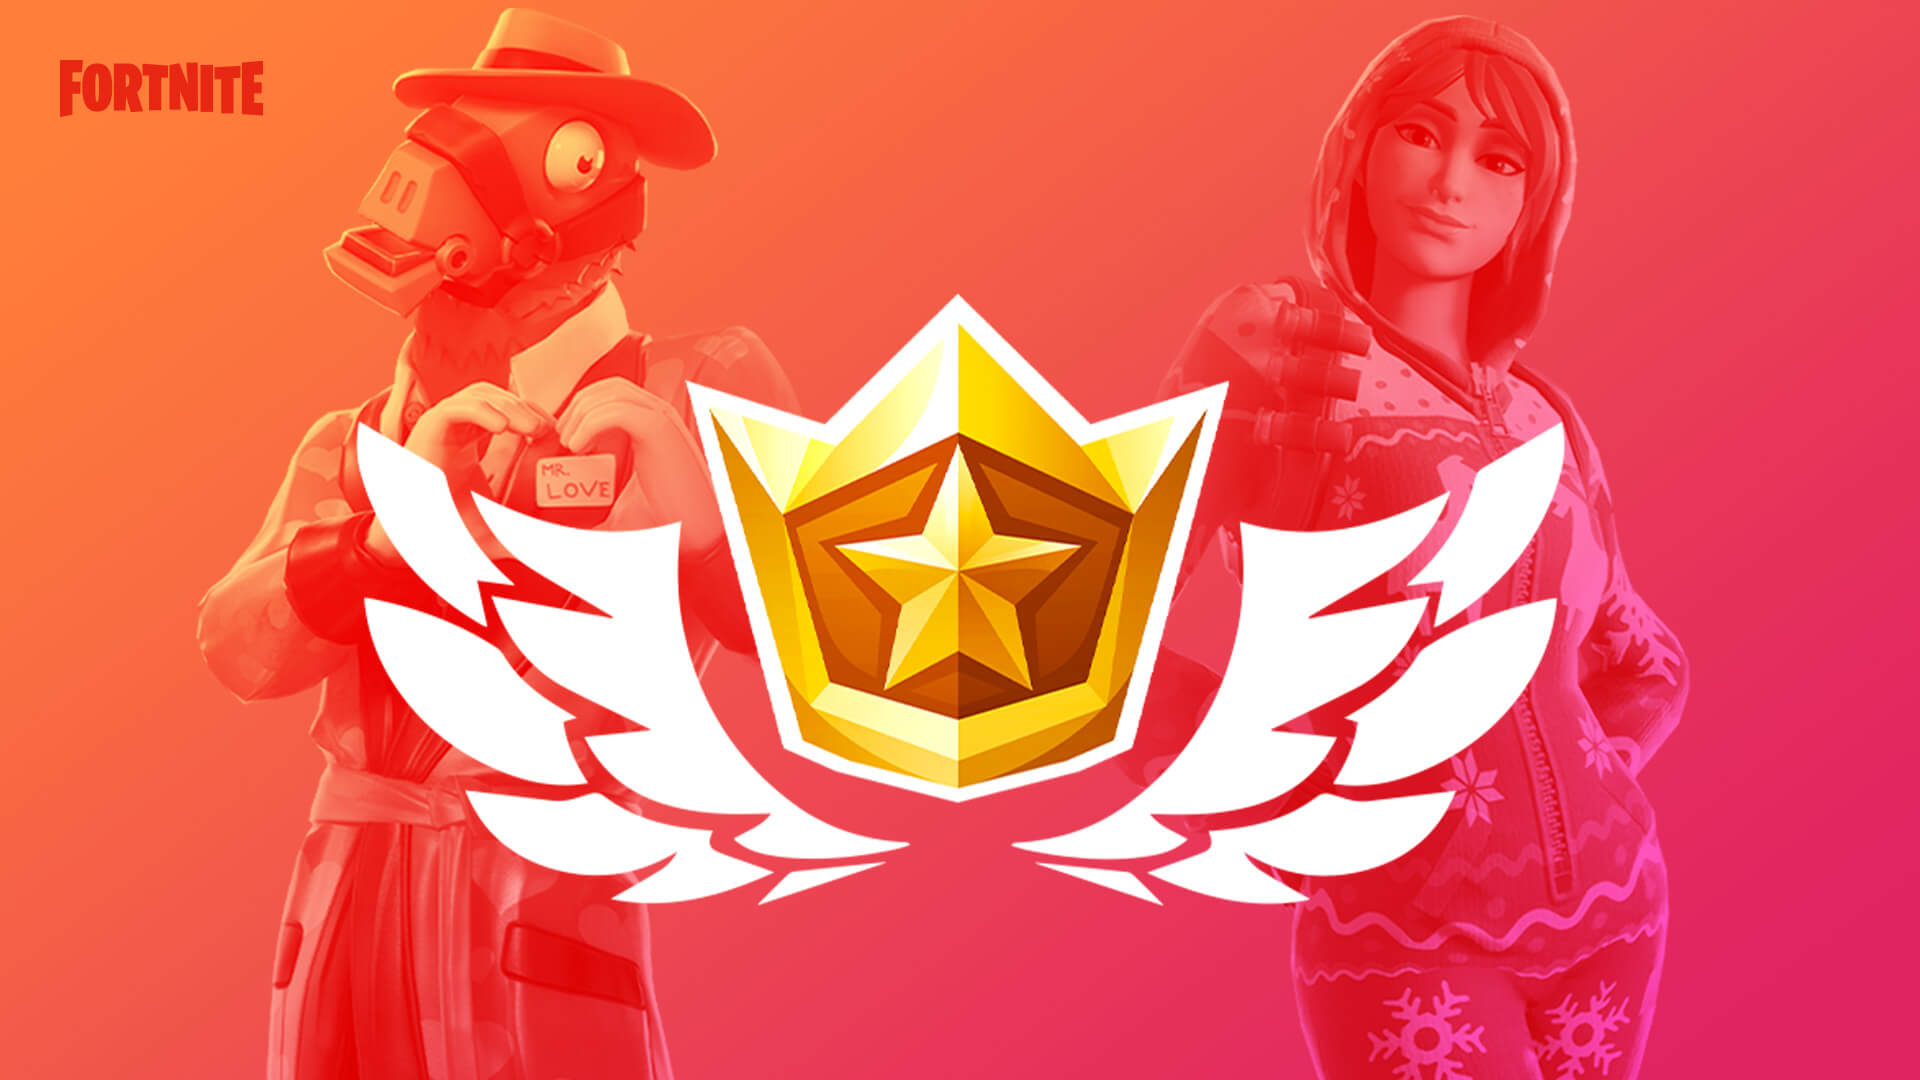 fortnite 7 40 patch notes free battle pass - unspeakable fortnite season 8